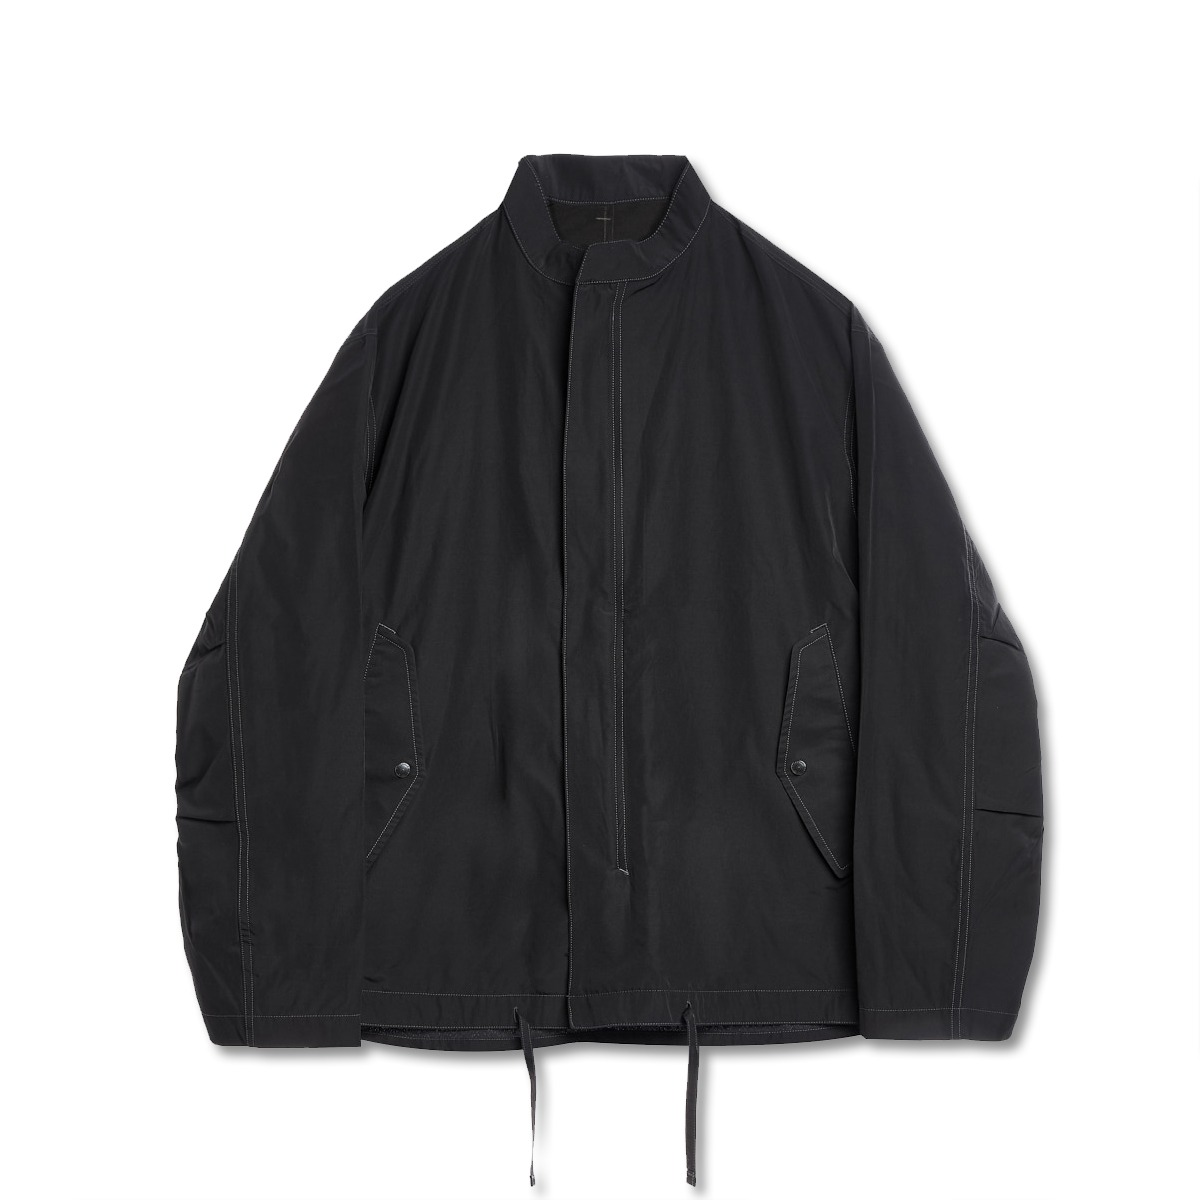 [EASTLOGUE] FISHTAIL SHIRT JACKET 'BLACK'